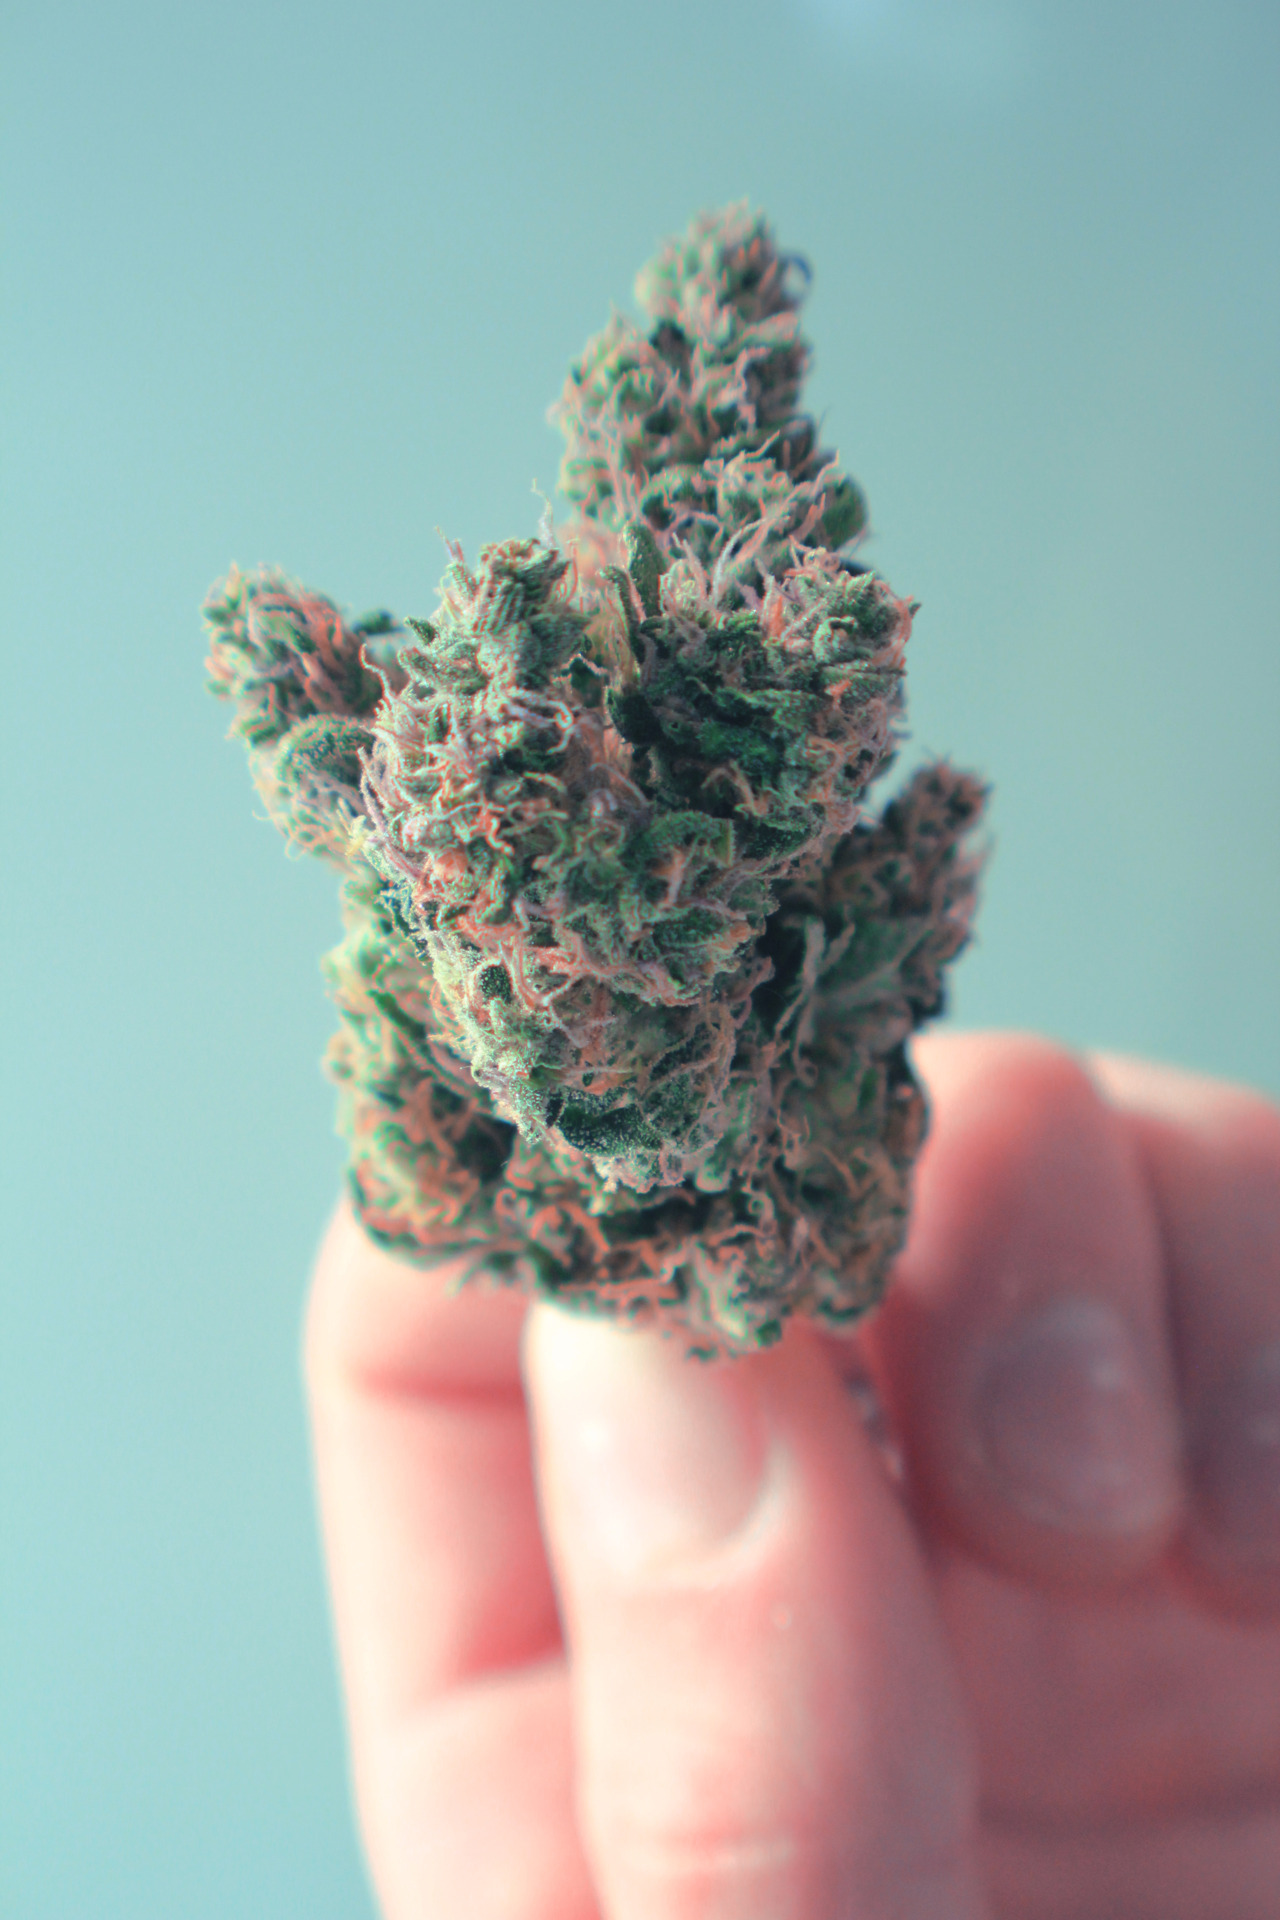 nikolawashere:  Perfect Nug photographed by Nikola Pavlinovic